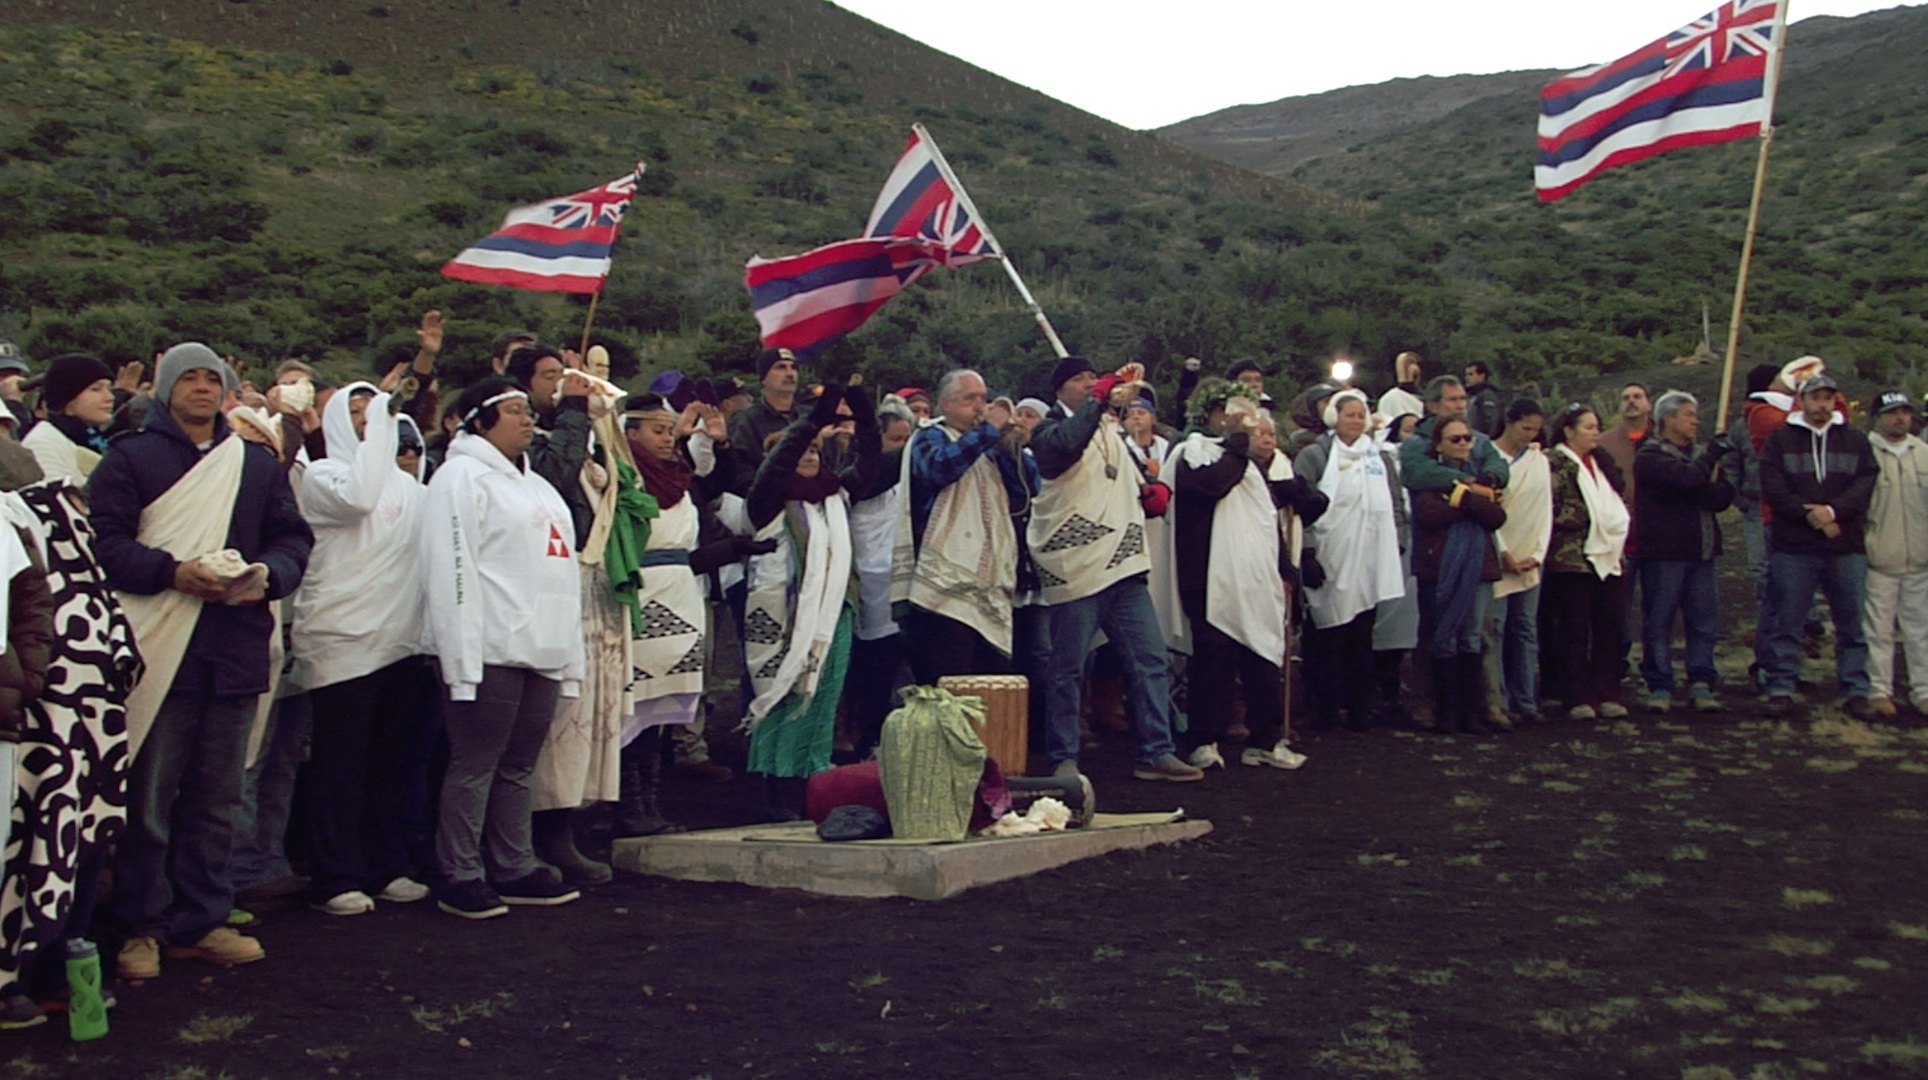 maunakea-hawaii-supreme-court-halts-tmt-construction